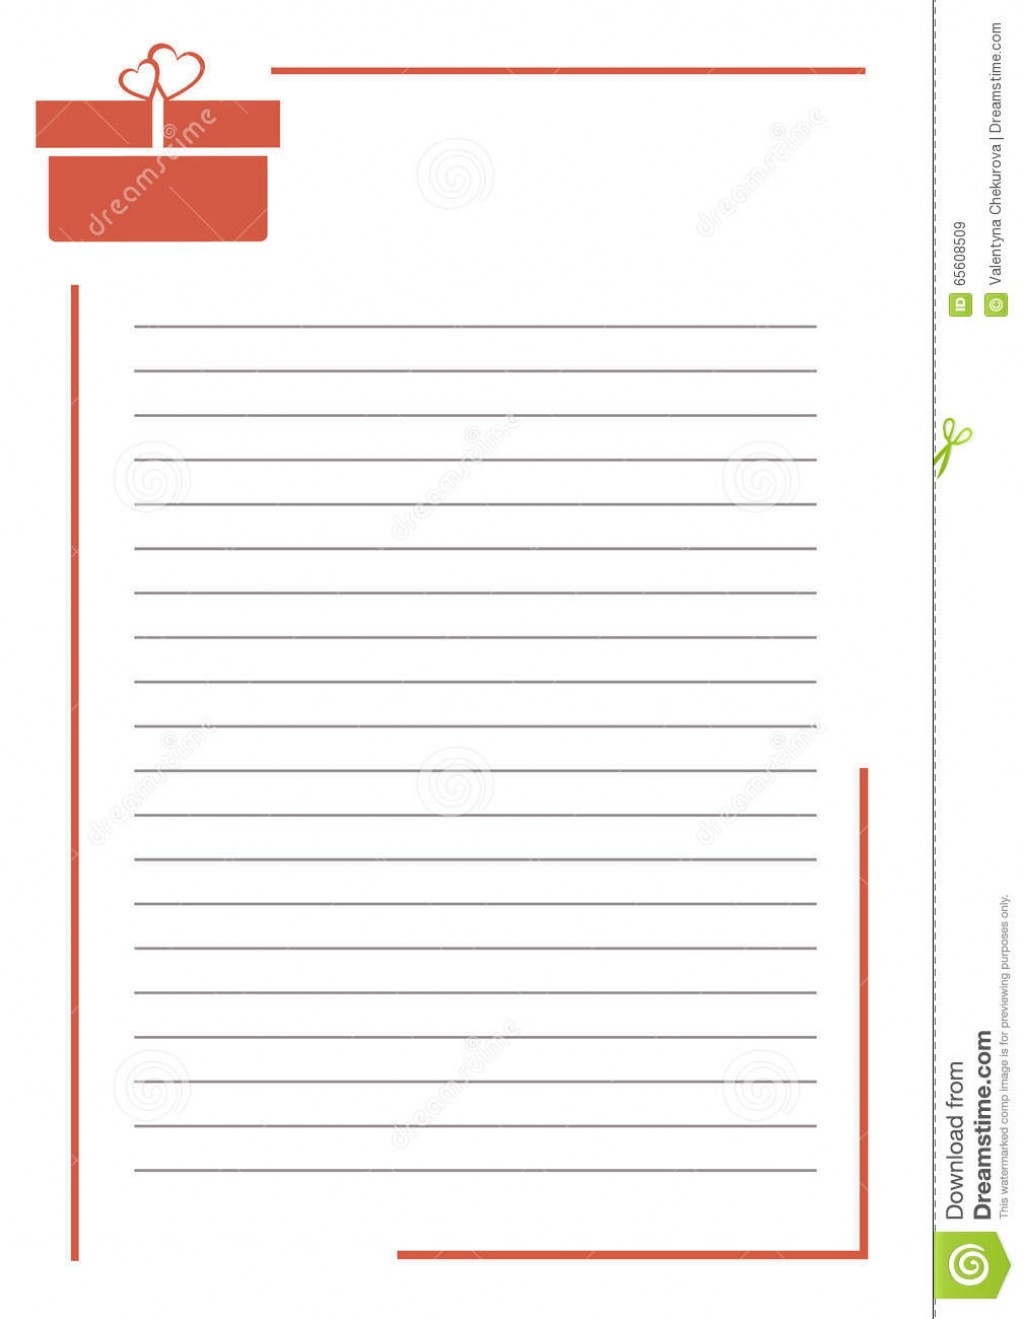 005 Vector Blank Letter Greeting Card White Paper Form Red Gift Box Lines Border Format Size Research Note Cards Examples For Unique A Example Template Large